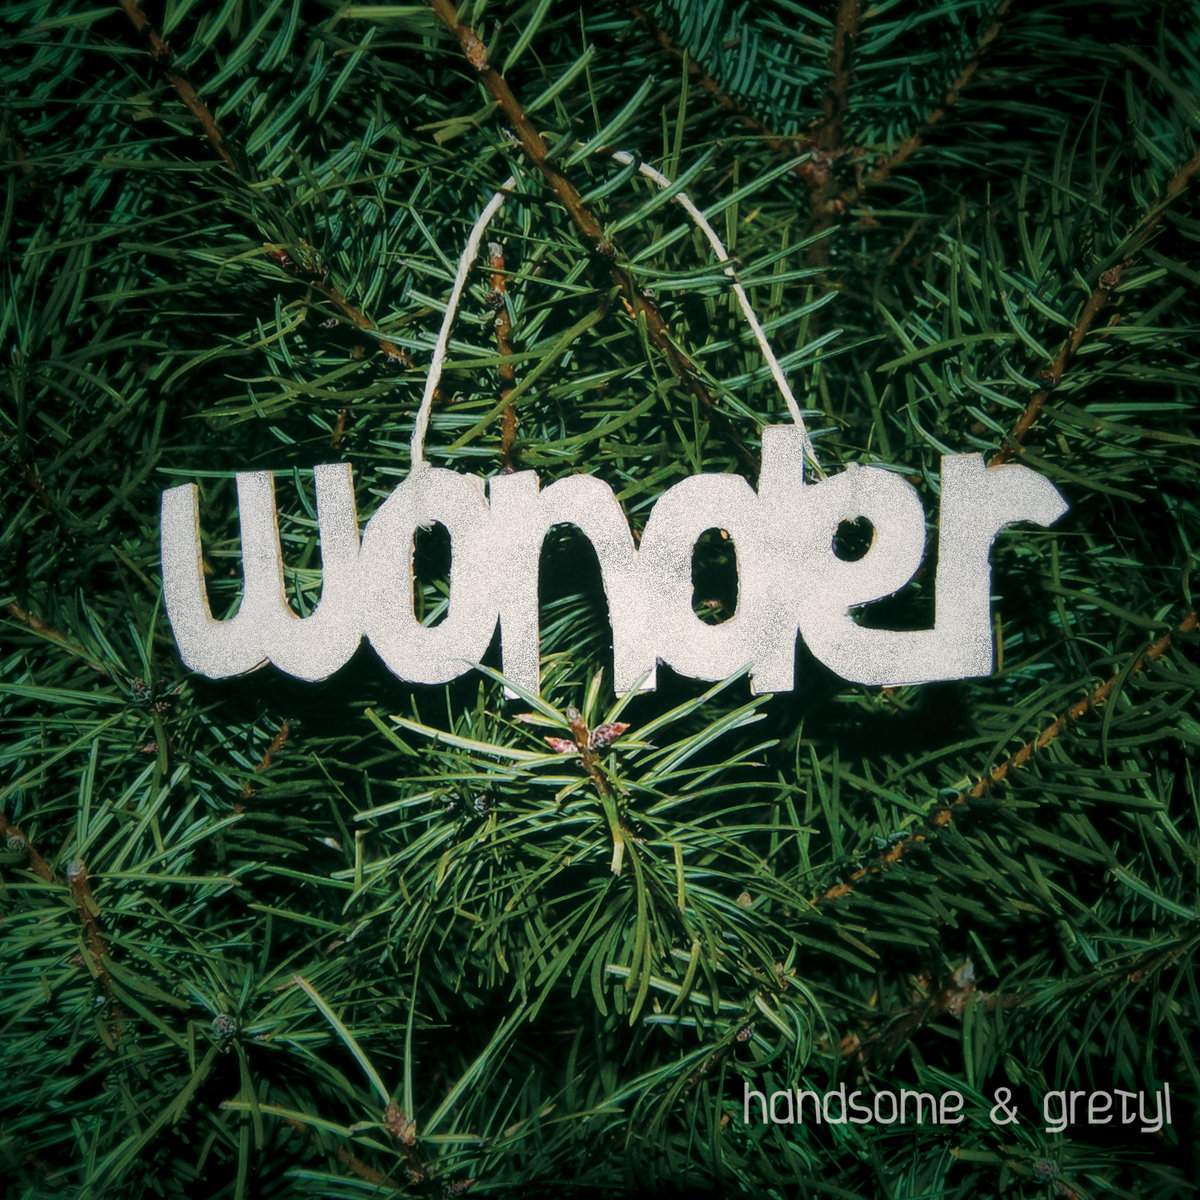 Grab a physical version of your favorite Christmas tunes! Includes unlimited streaming of Wonder via the free Bandcamp app, plus high-quality download in ...